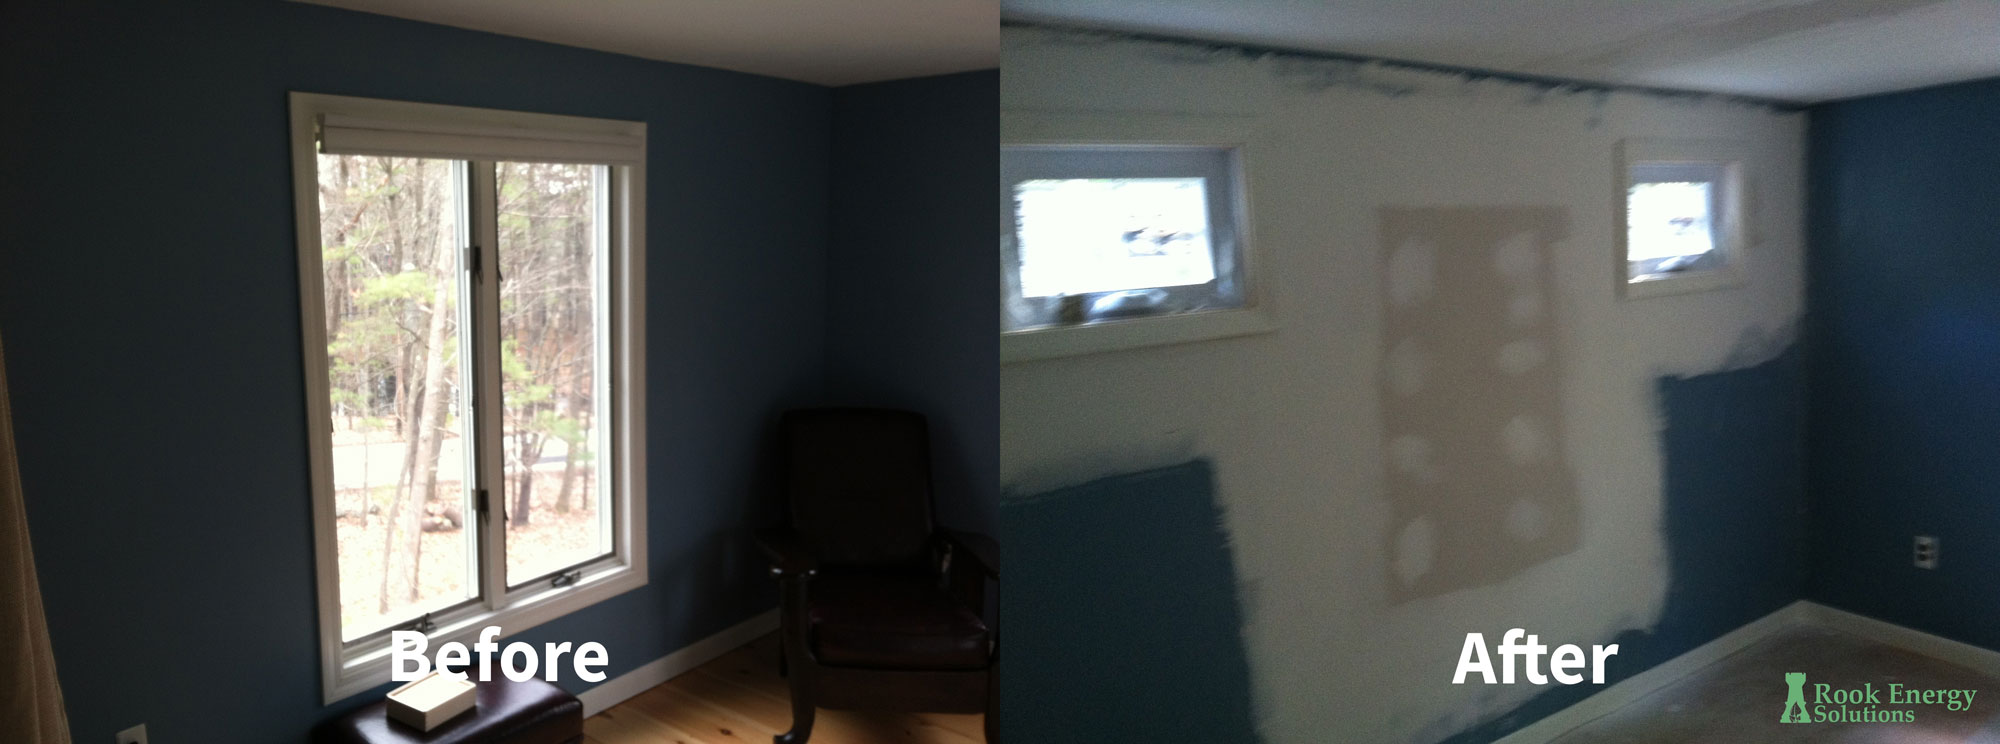 window replacement,awning windows, drywall repair, before and after